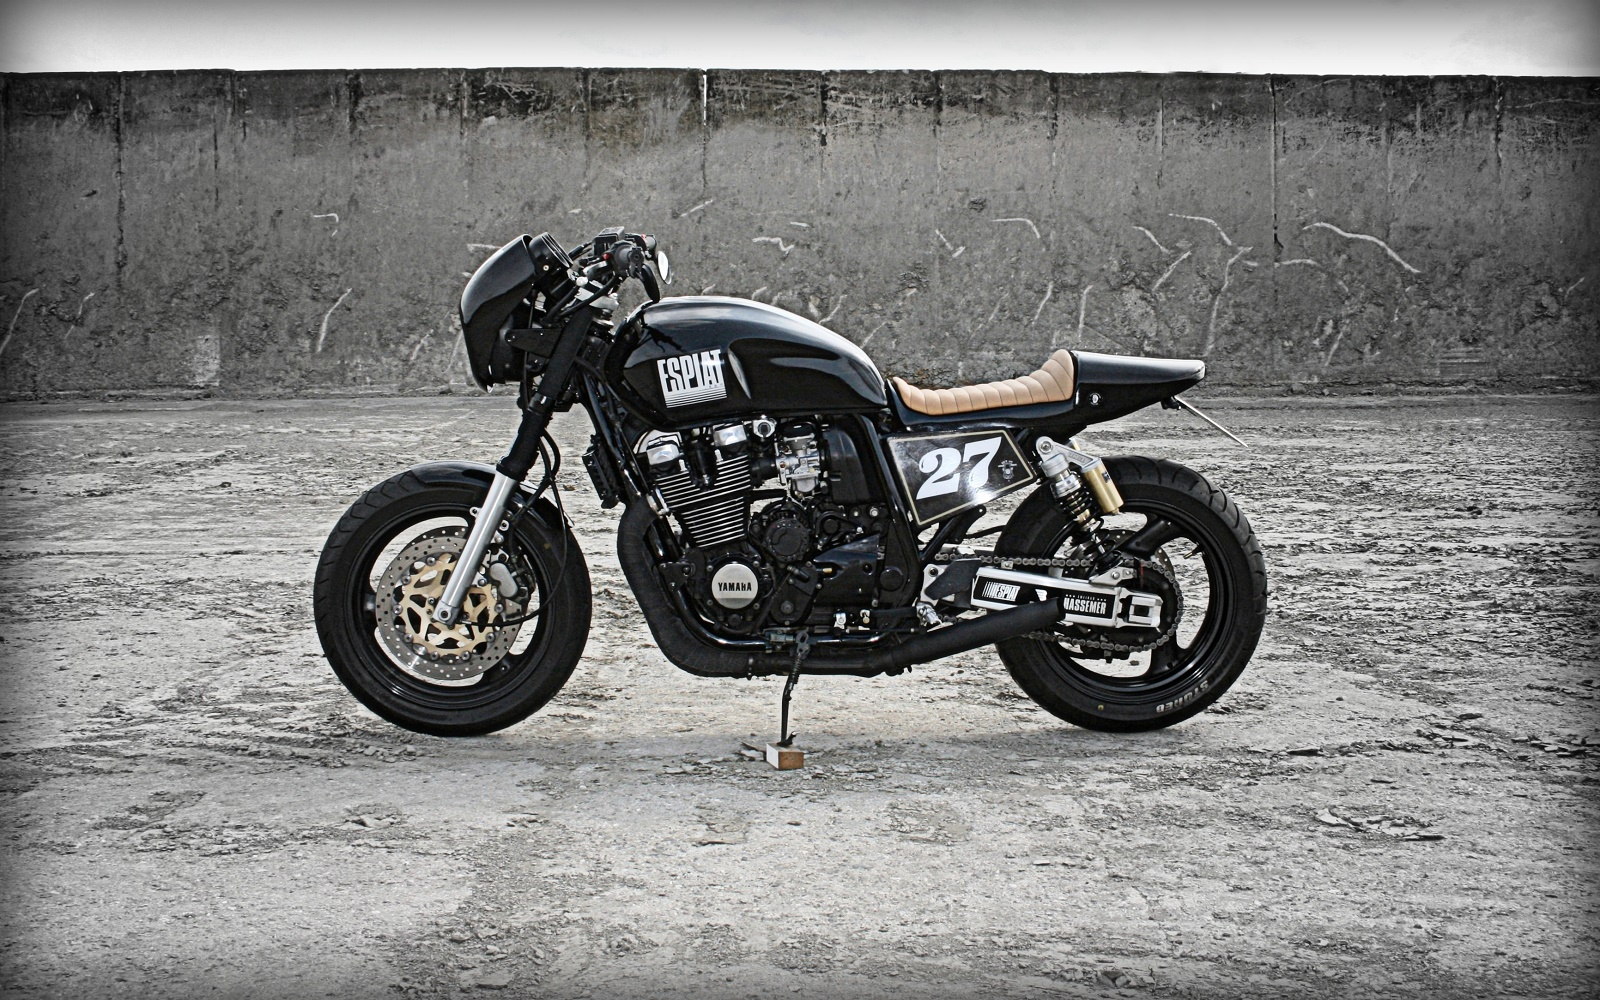 yamaha xjr 1200 by rocketgarage cafe racer magazine. Black Bedroom Furniture Sets. Home Design Ideas